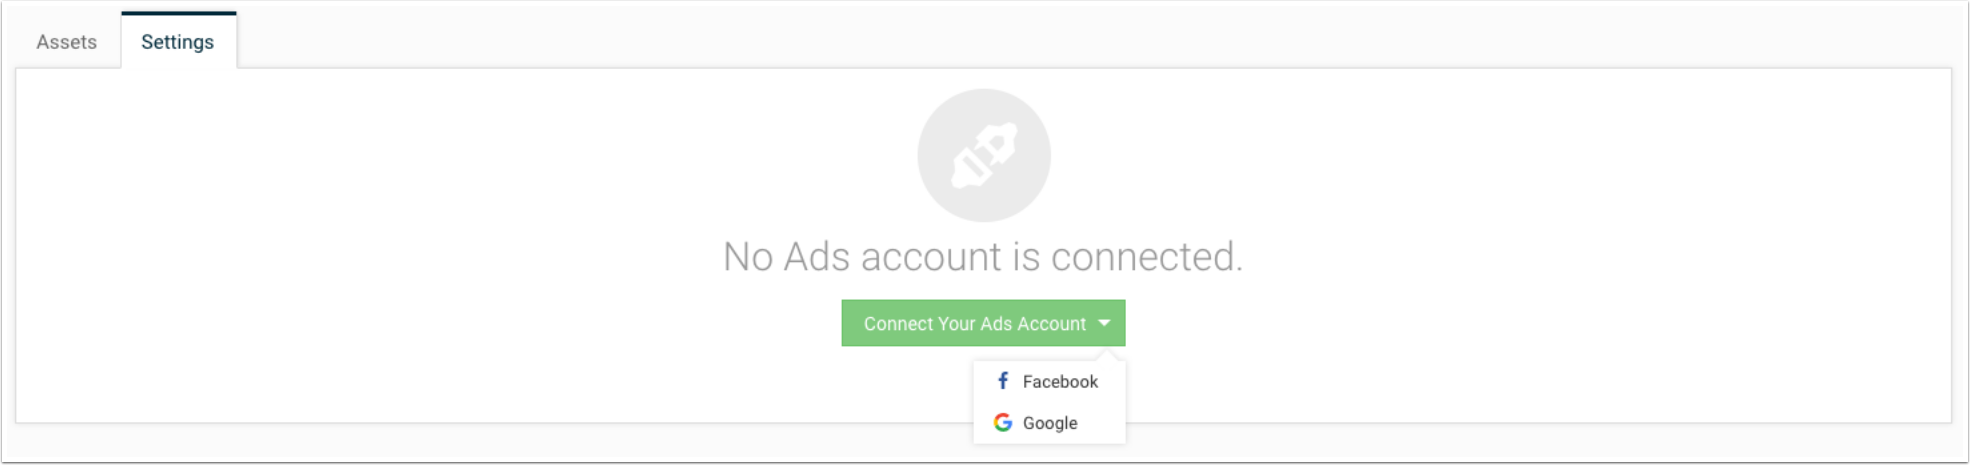 Connecting to Facebook and Google – Emarsys